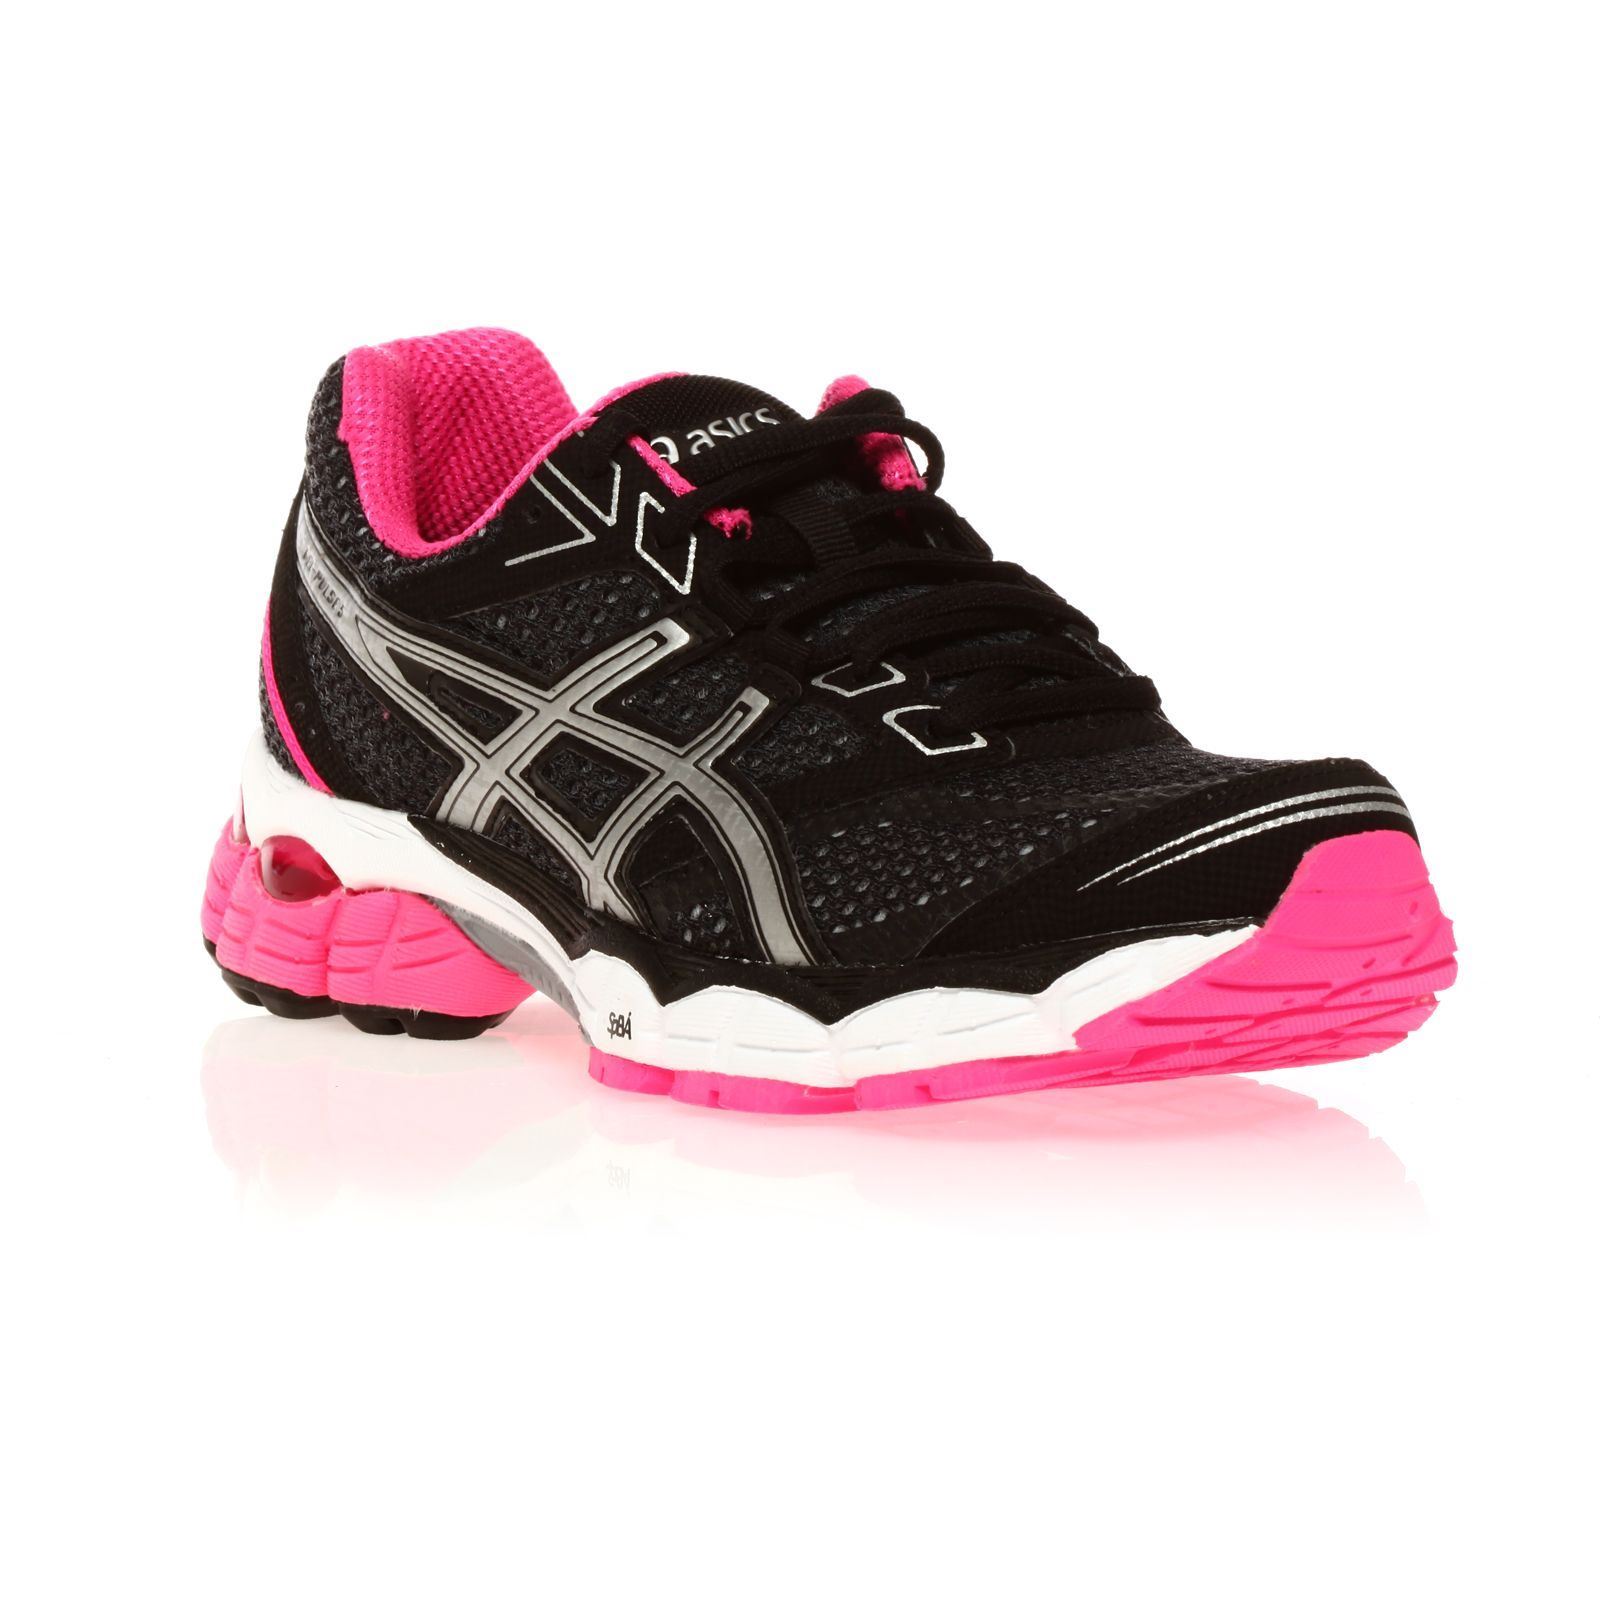 asics gel pulse 5 baskets noir et rose brandalley. Black Bedroom Furniture Sets. Home Design Ideas